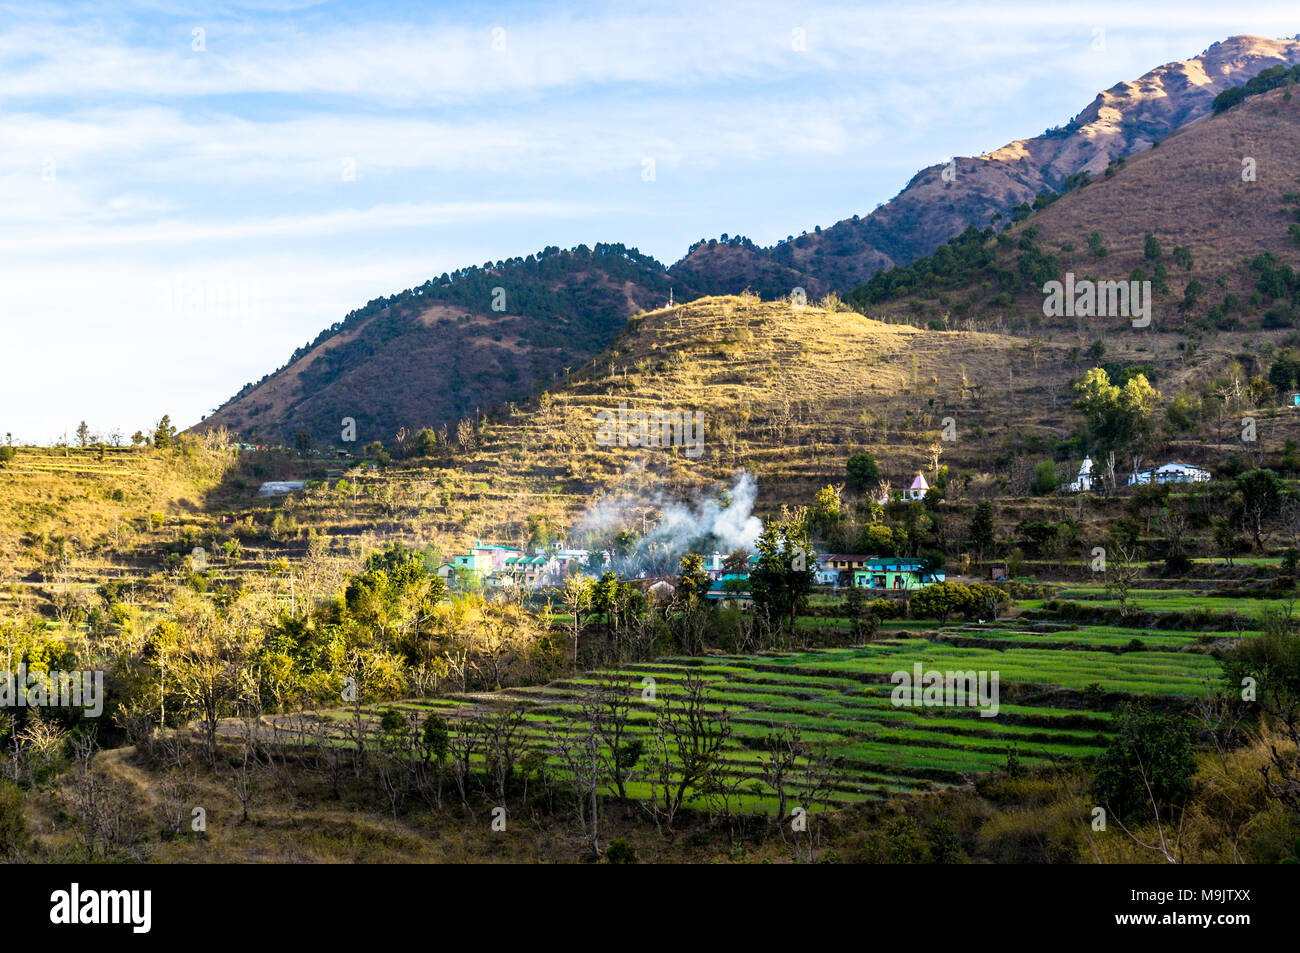 Landscape shot of Dehradun with a village on a hillside. The smoke coming from the village, the grassy stepped fields and beautiful surroundings make this a perfect tourism shot - Stock Image